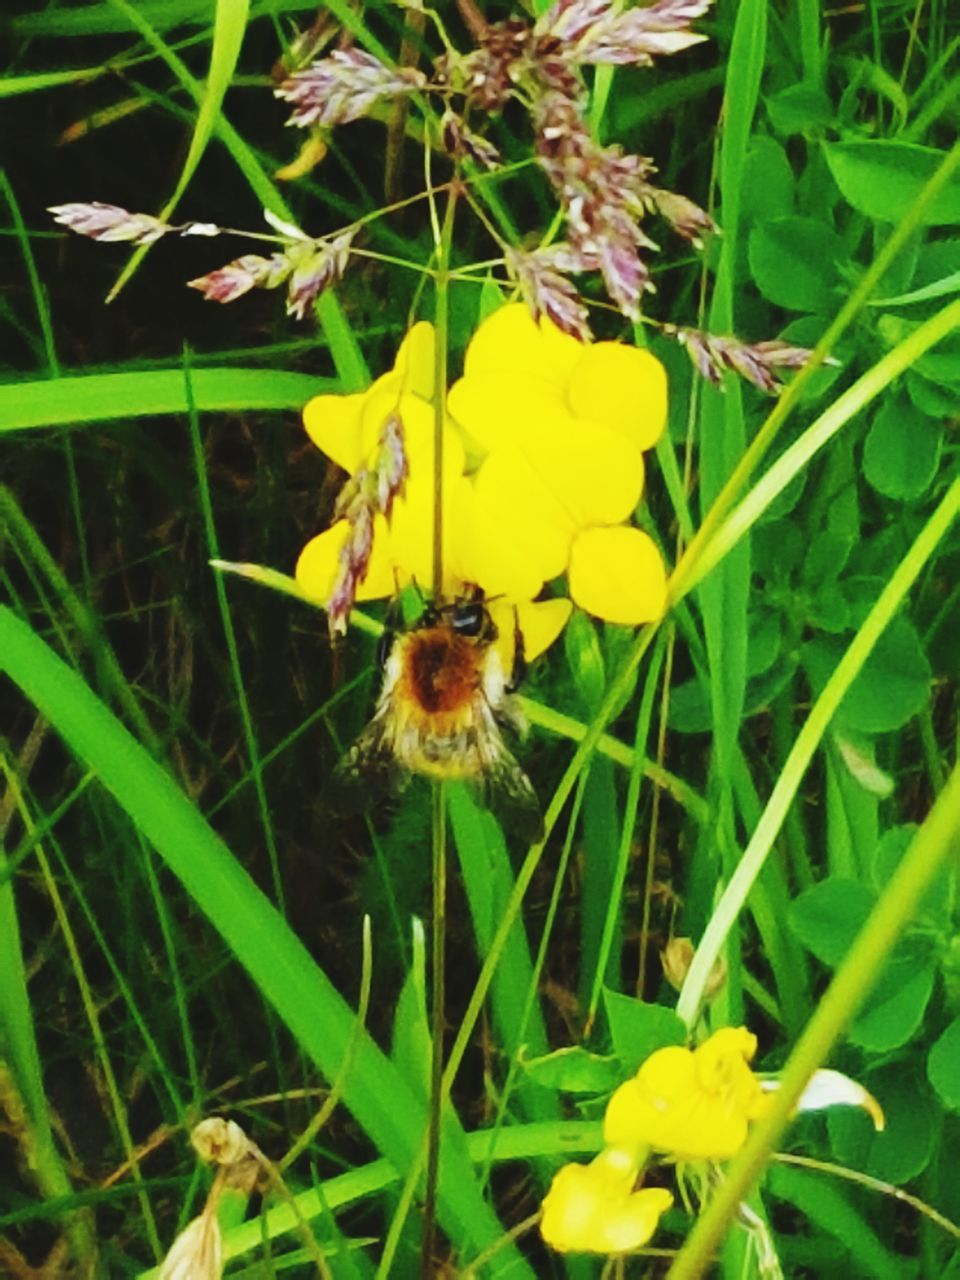 flower, one animal, yellow, growth, insect, animal themes, nature, petal, plant, animals in the wild, fragility, beauty in nature, green color, freshness, flower head, bee, outdoors, pollination, animal wildlife, no people, day, grass, leaf, close-up, blooming